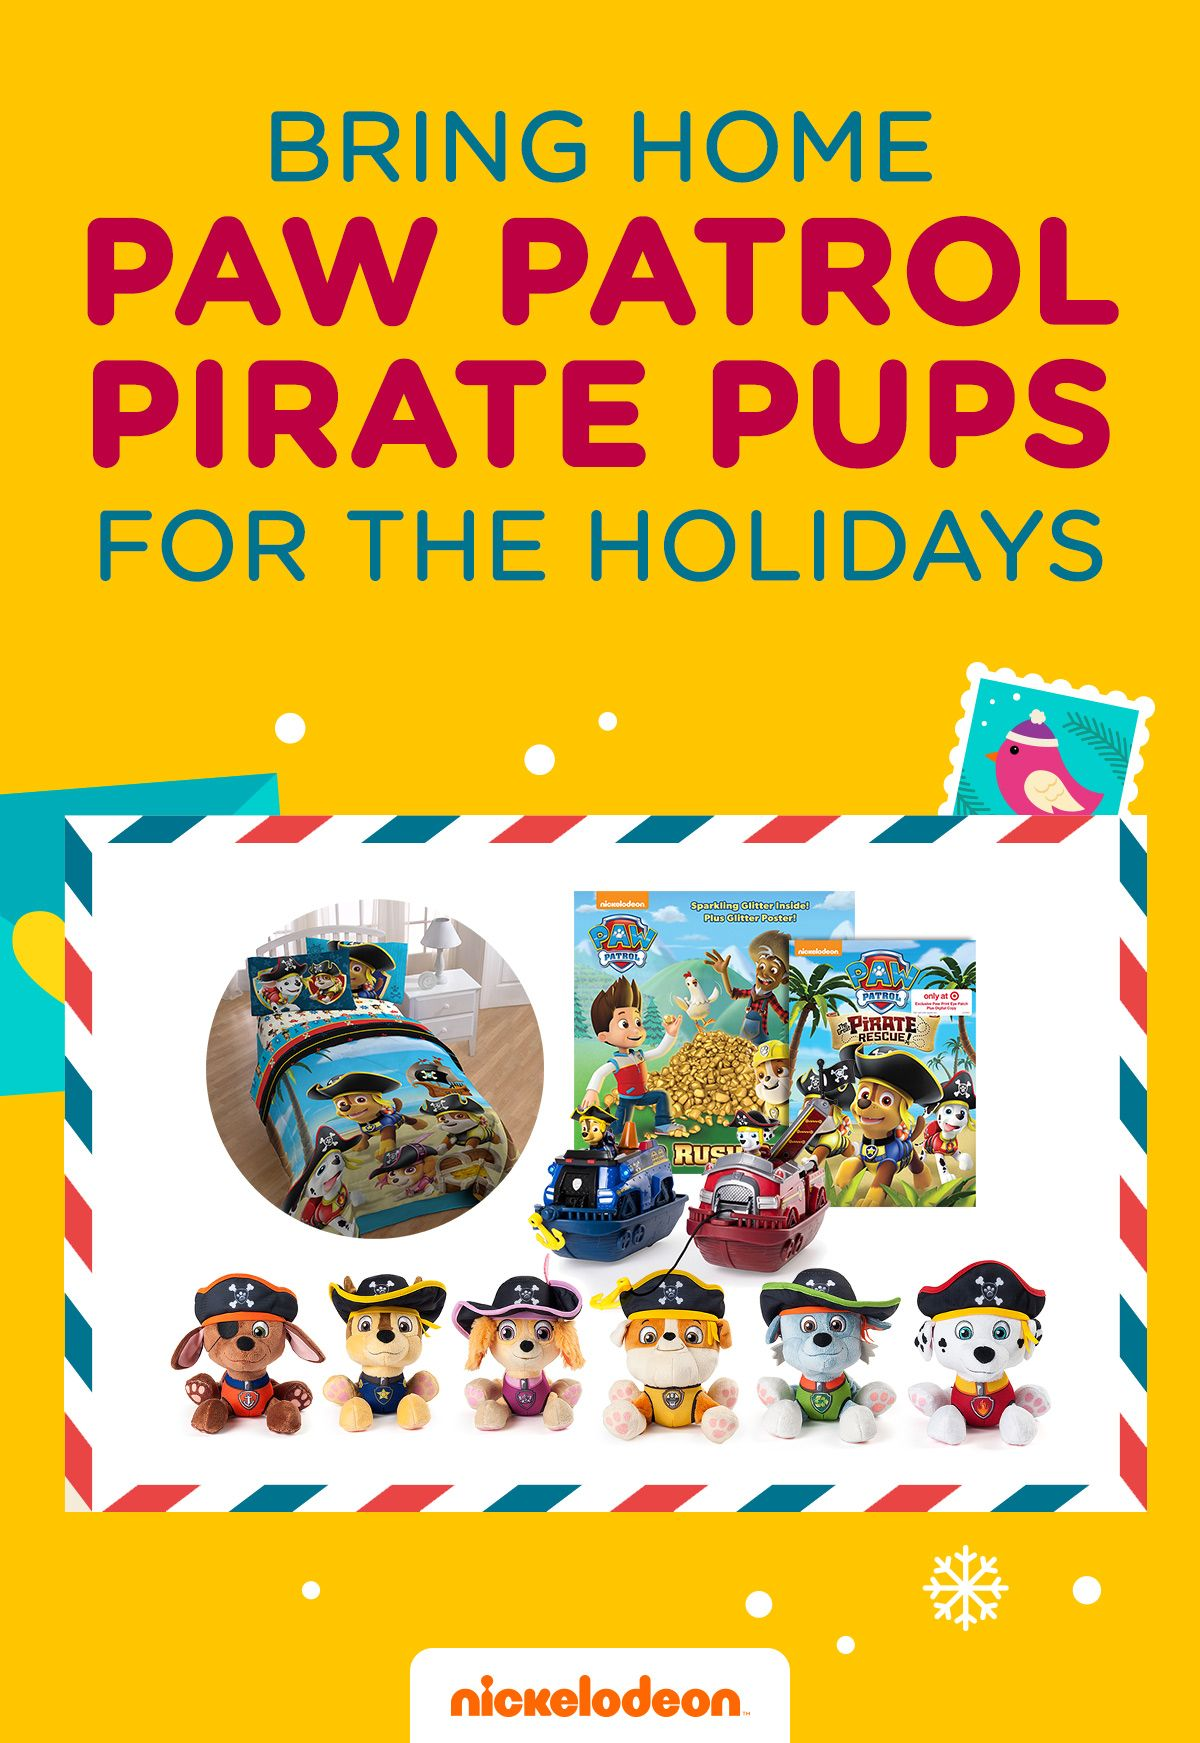 Nick Com Enter To Win : enter, Click, Enter, Sweepstakes, Chance, Patrol, Pirate, Incl…, Puppy, Gifts,, Holiday, Printables